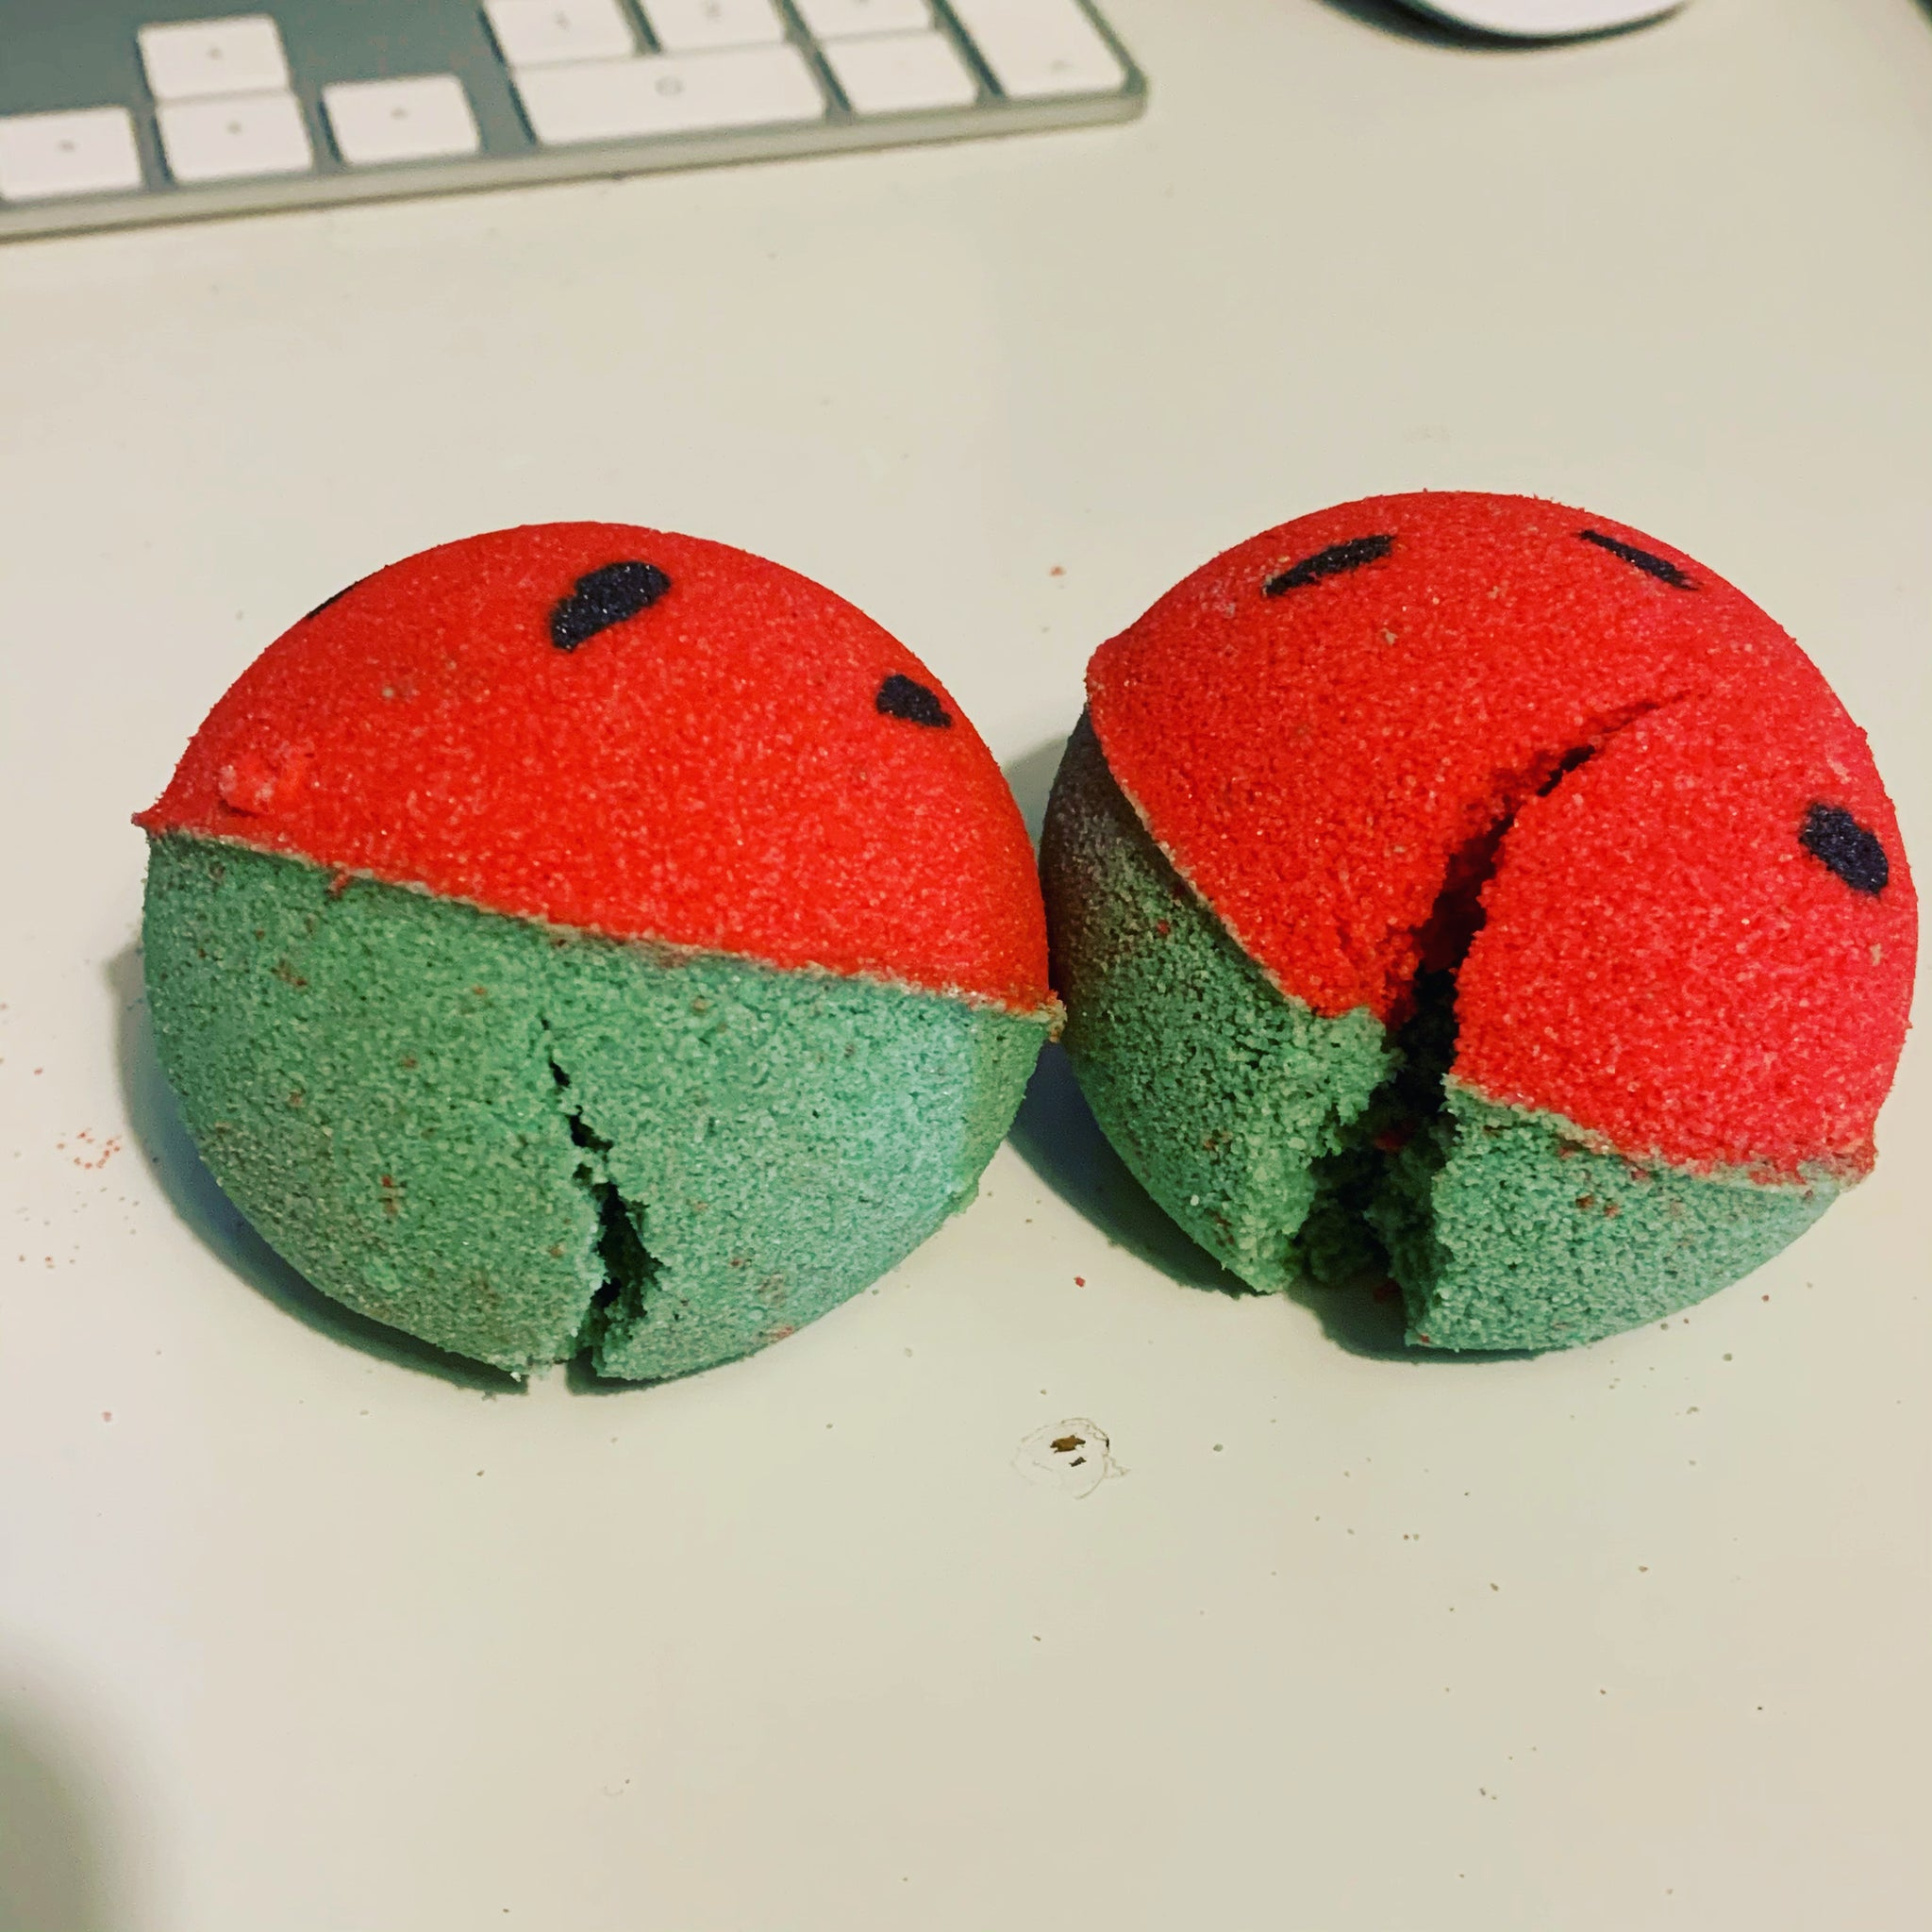 SECONDS Watermelon Bath Bomb